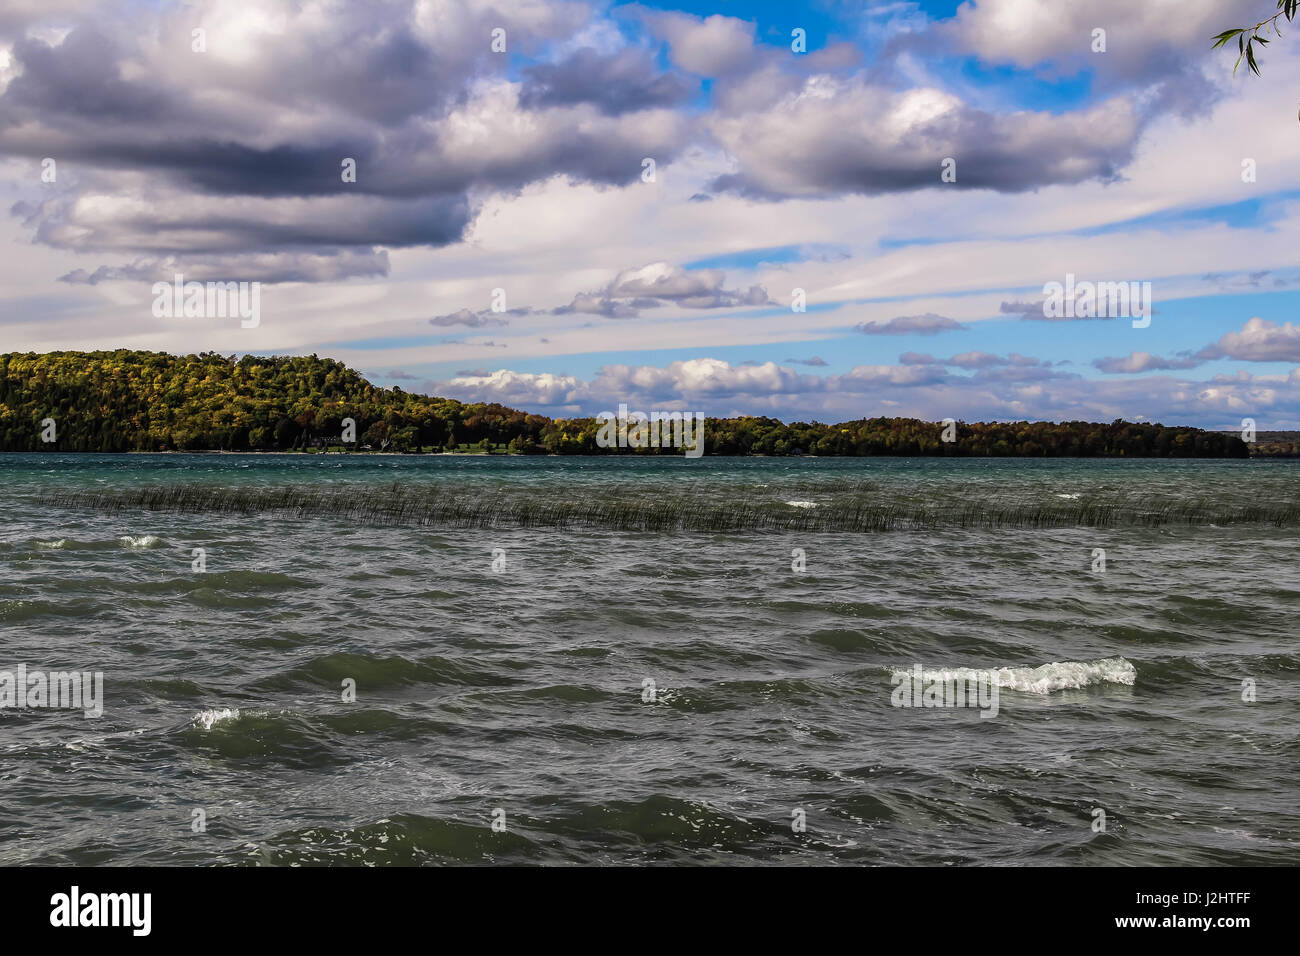 Dramatic cloudy sky and gray water scenic background, Canada - Stock Image